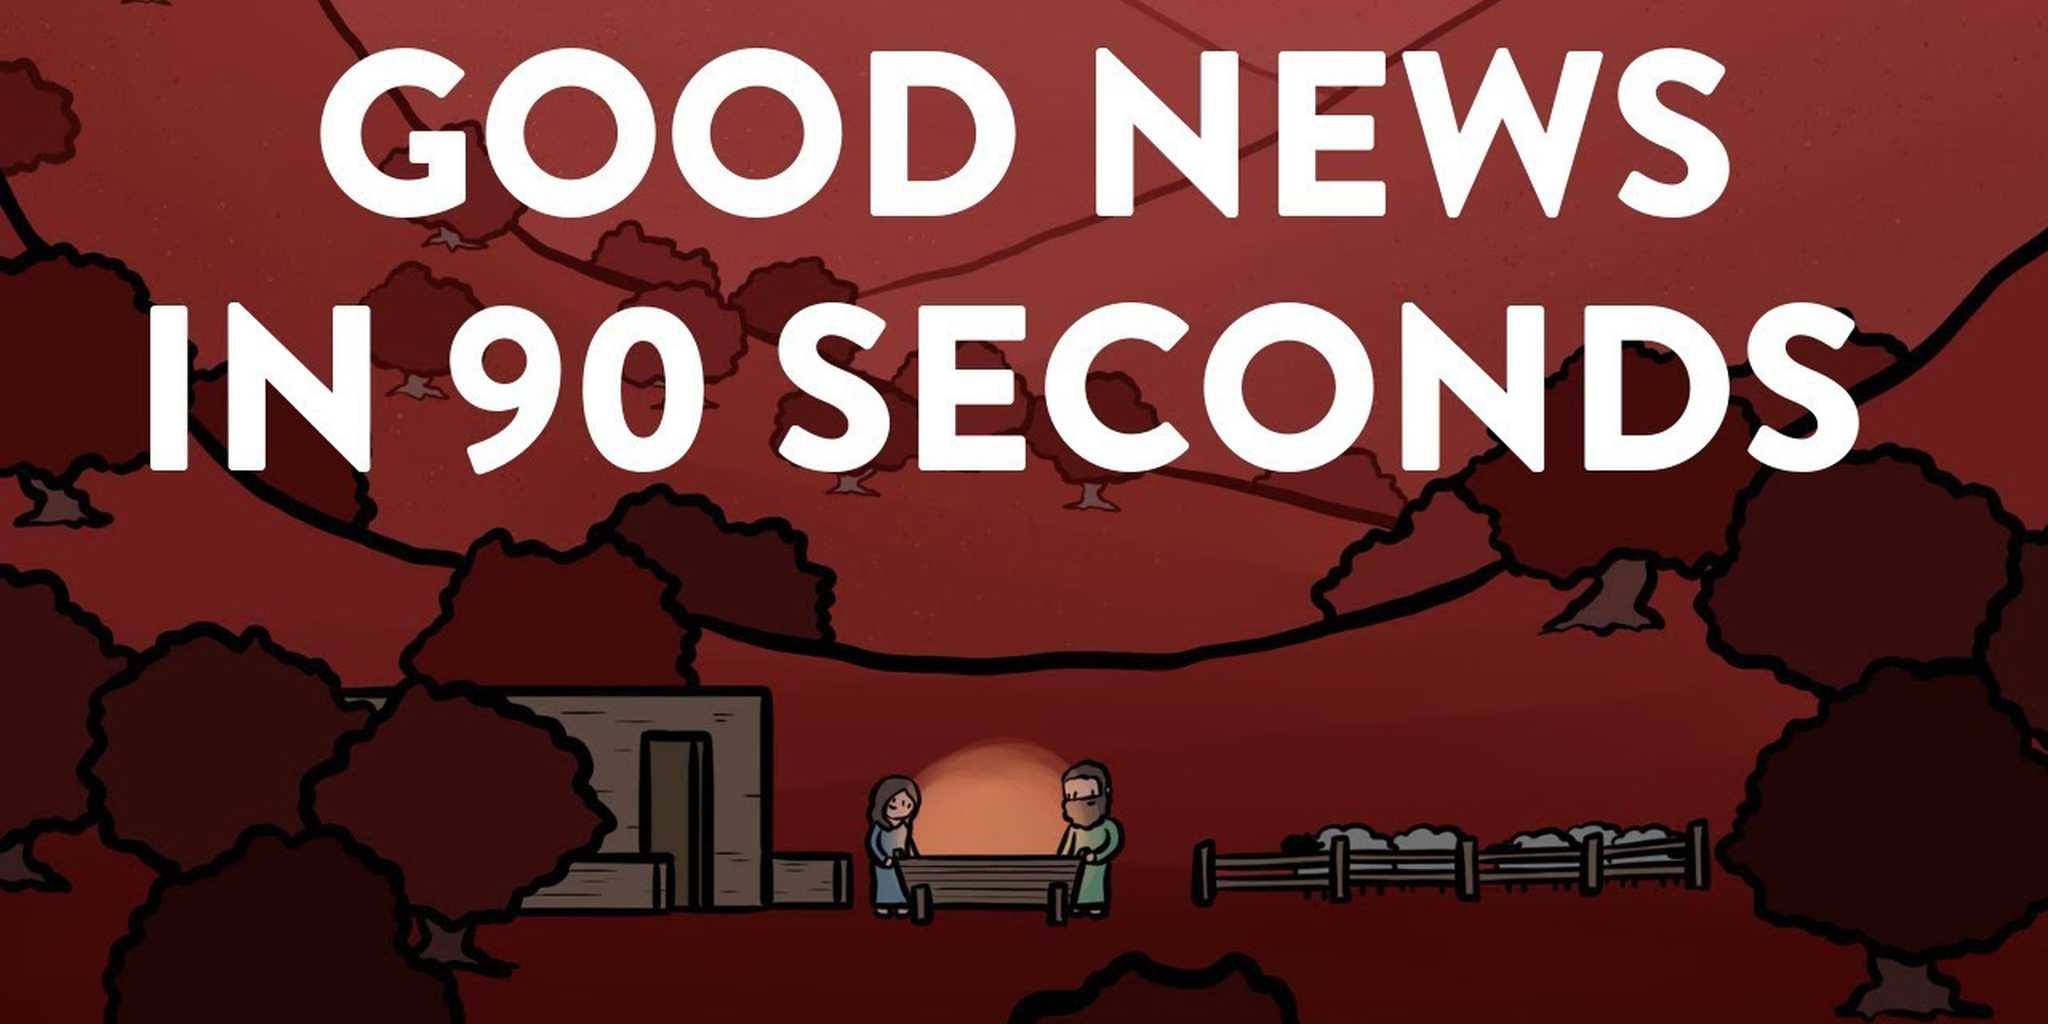 The Good News in 90 Seconds